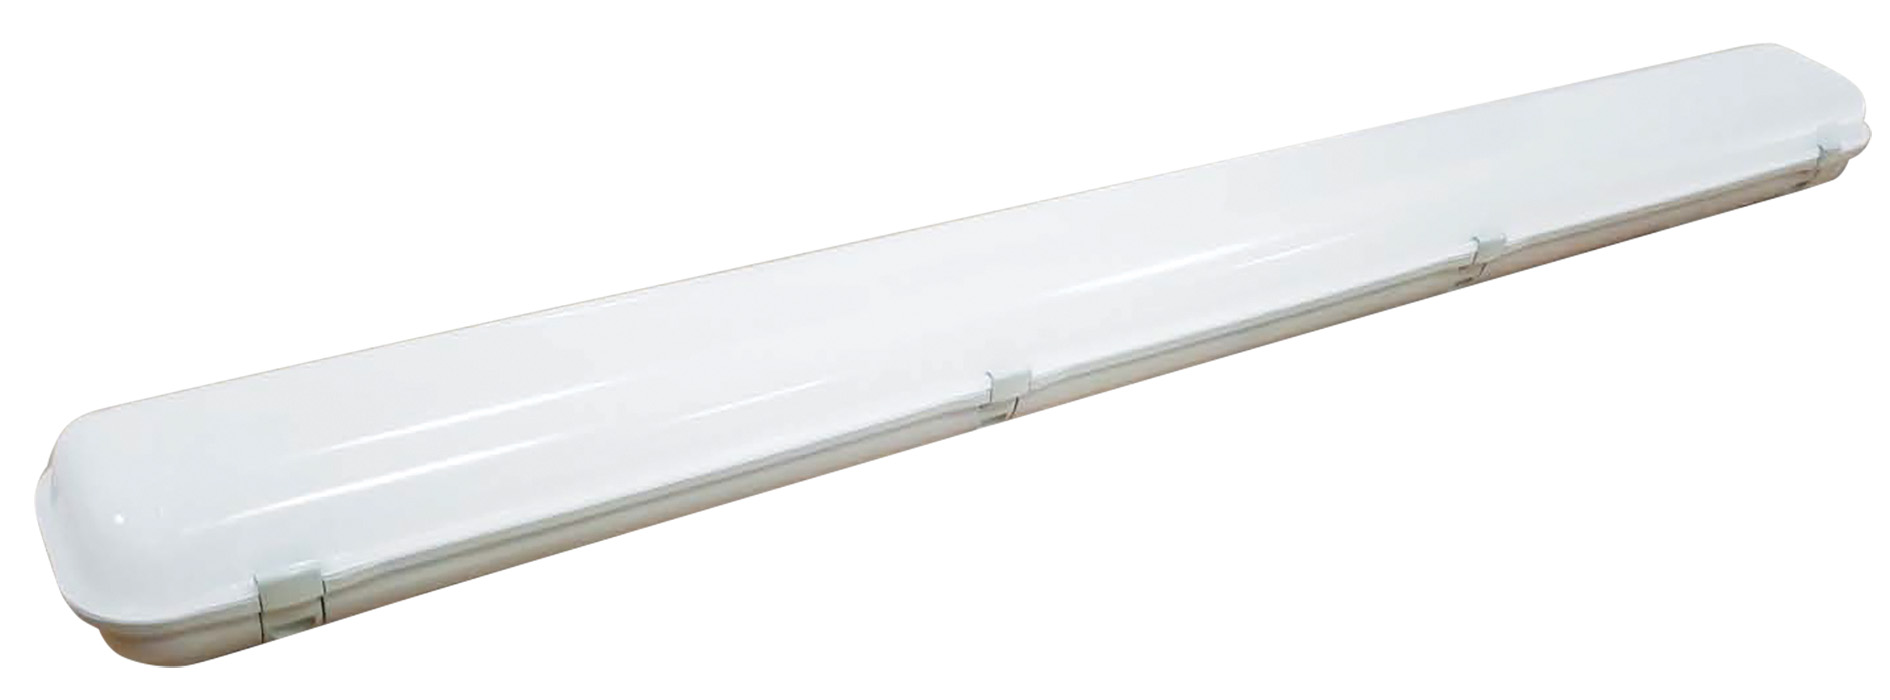 ORR158-1574S 31W LED Batten Light